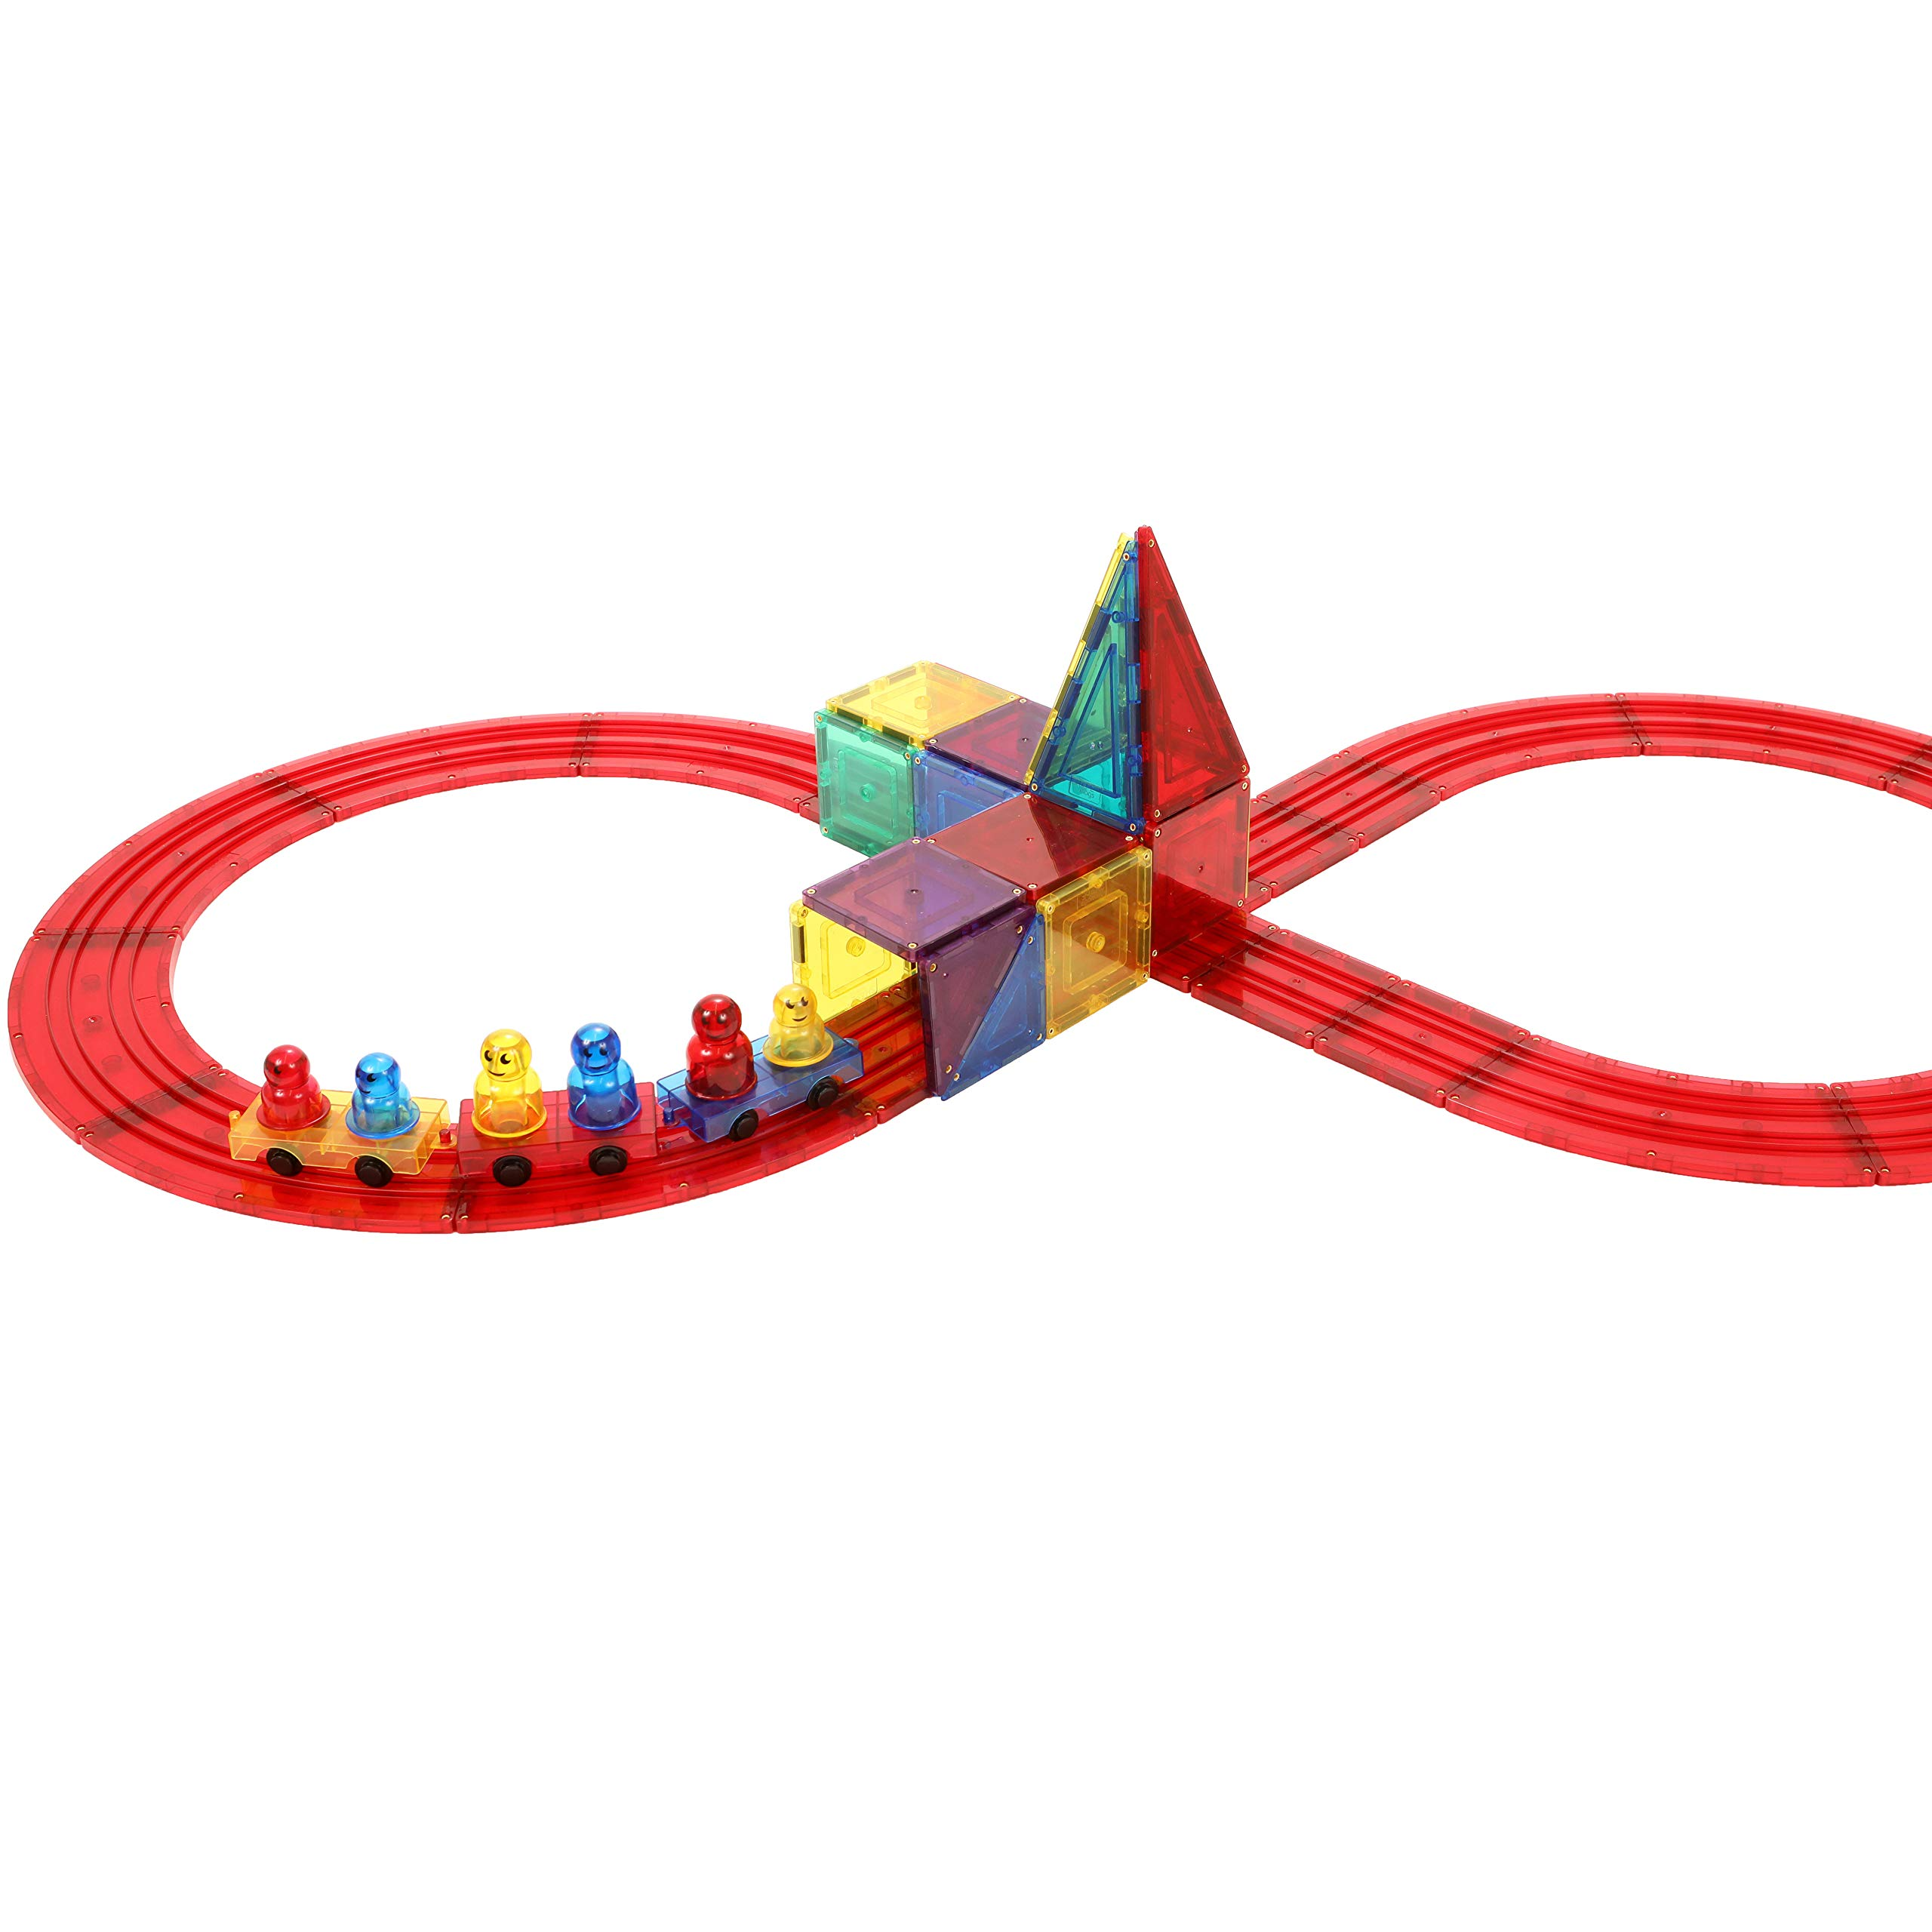 Magnetic Stick N Stack Award Winning 30 Piece Train Set, Made with Power+Magnets, Includes Train Track Tiles, 3 Train Bases and 6 Figures